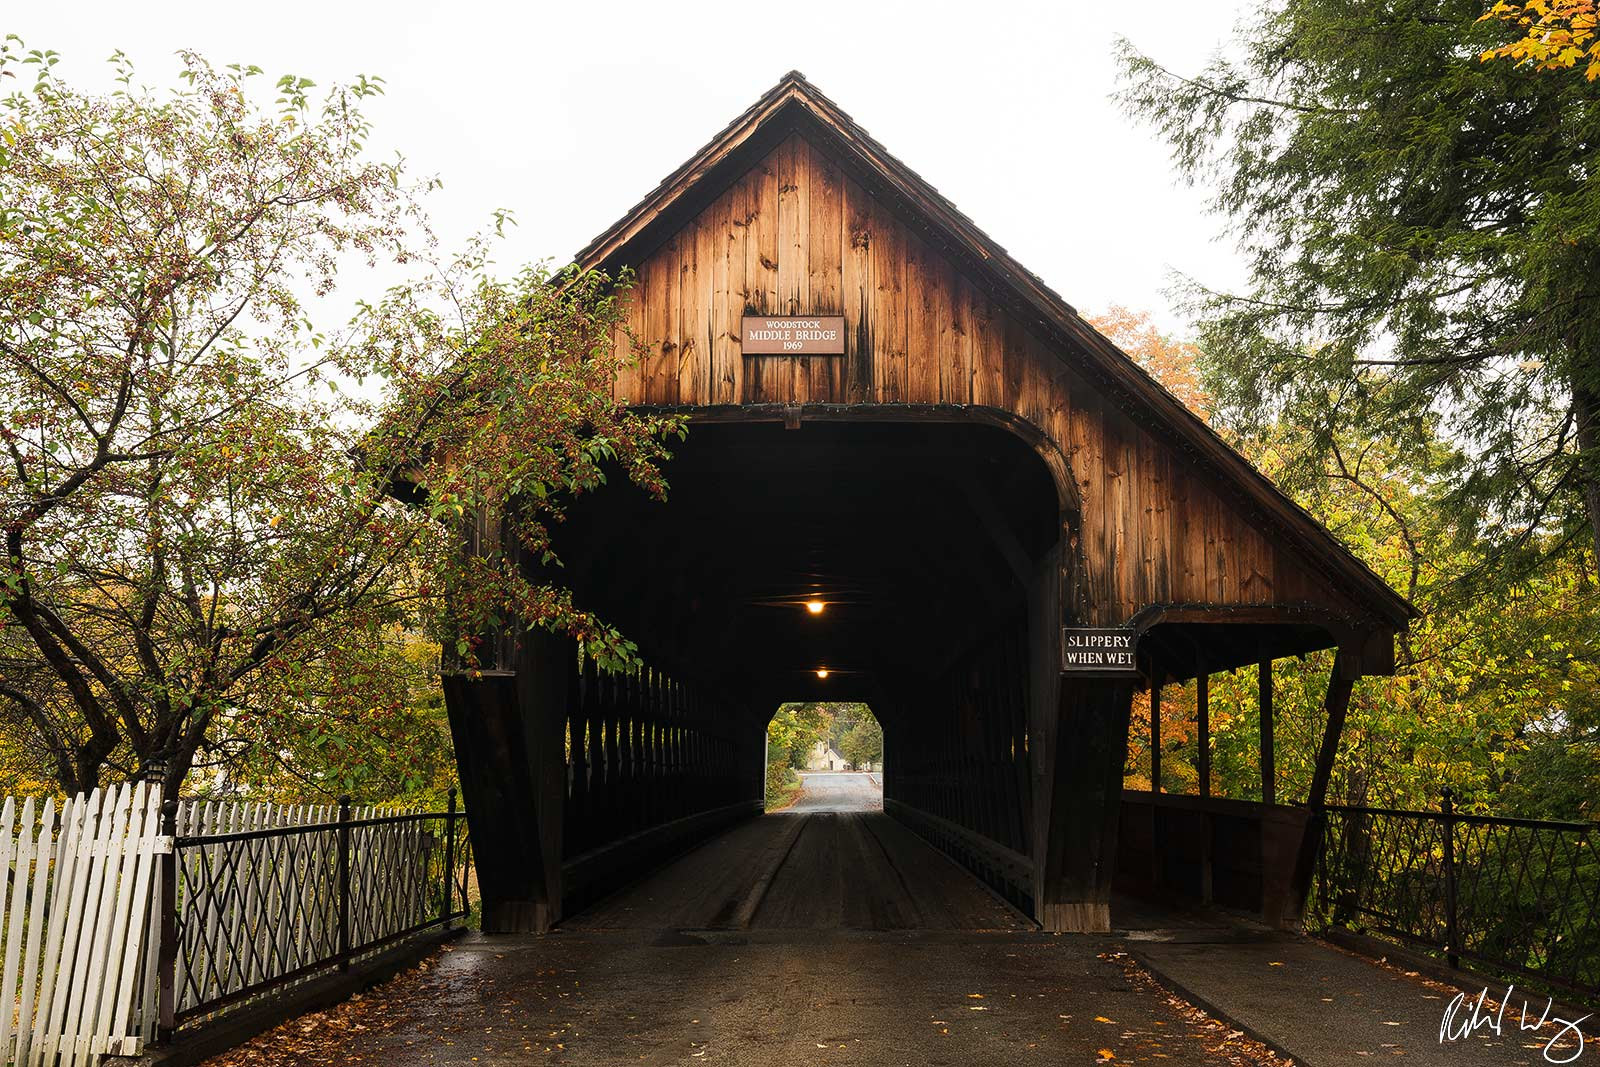 Woodstock Middle Bridge, Woodstock, Vermont, Photo, photo